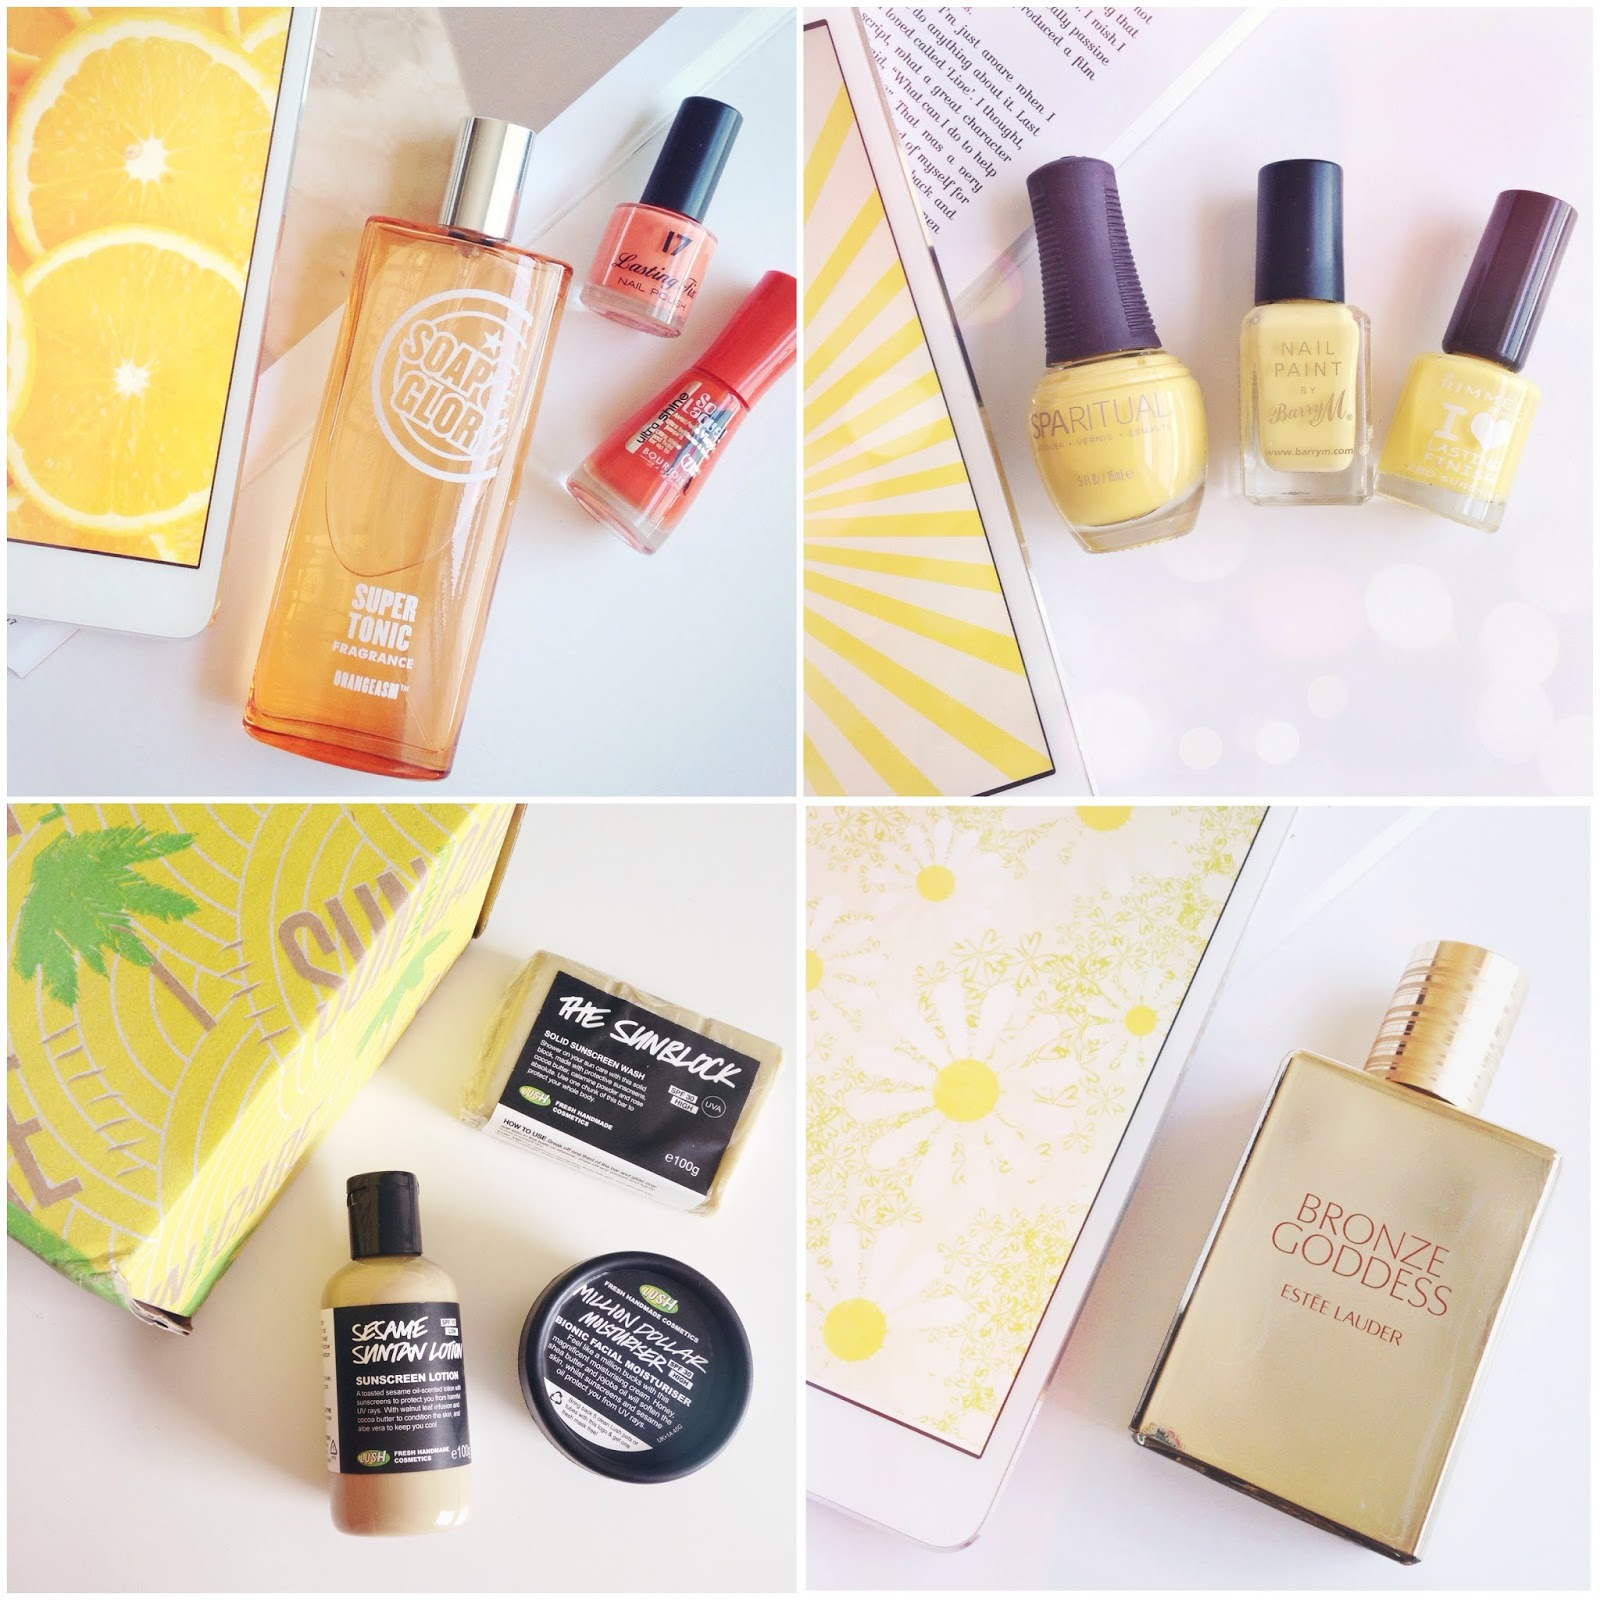 spirit of summer rekorderlig, beauty blogger, yellow beauty products